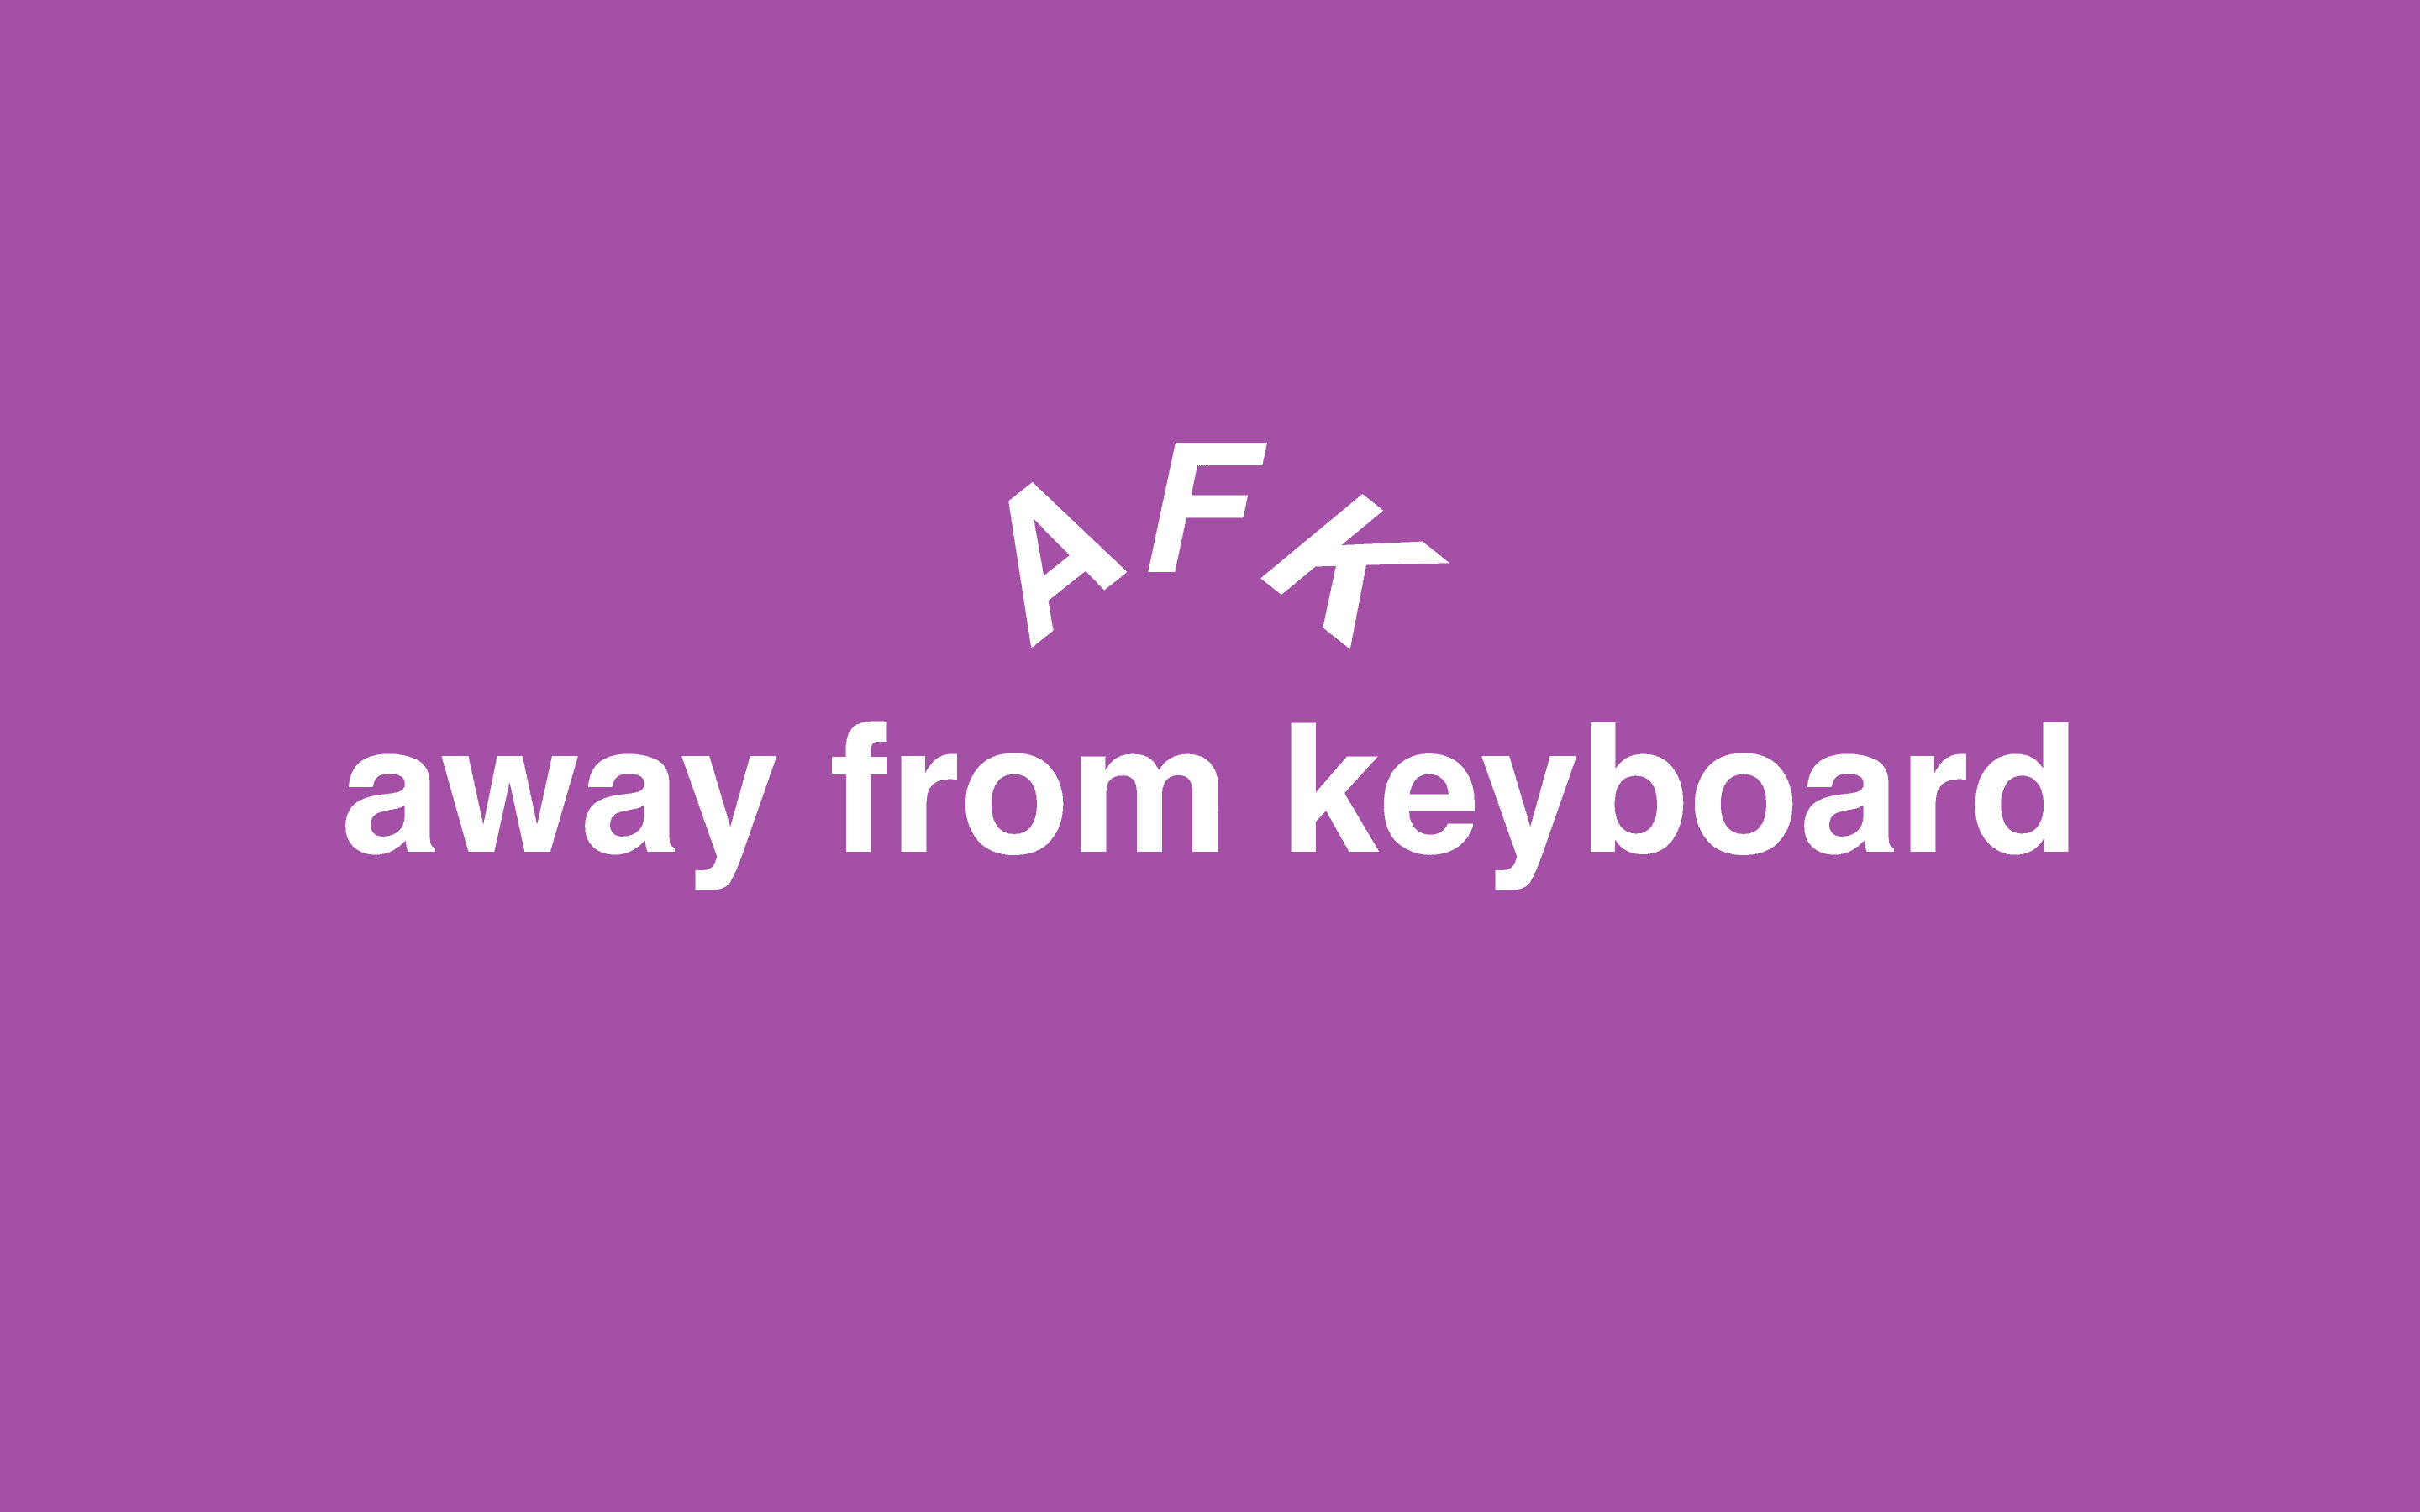 AFK meaning